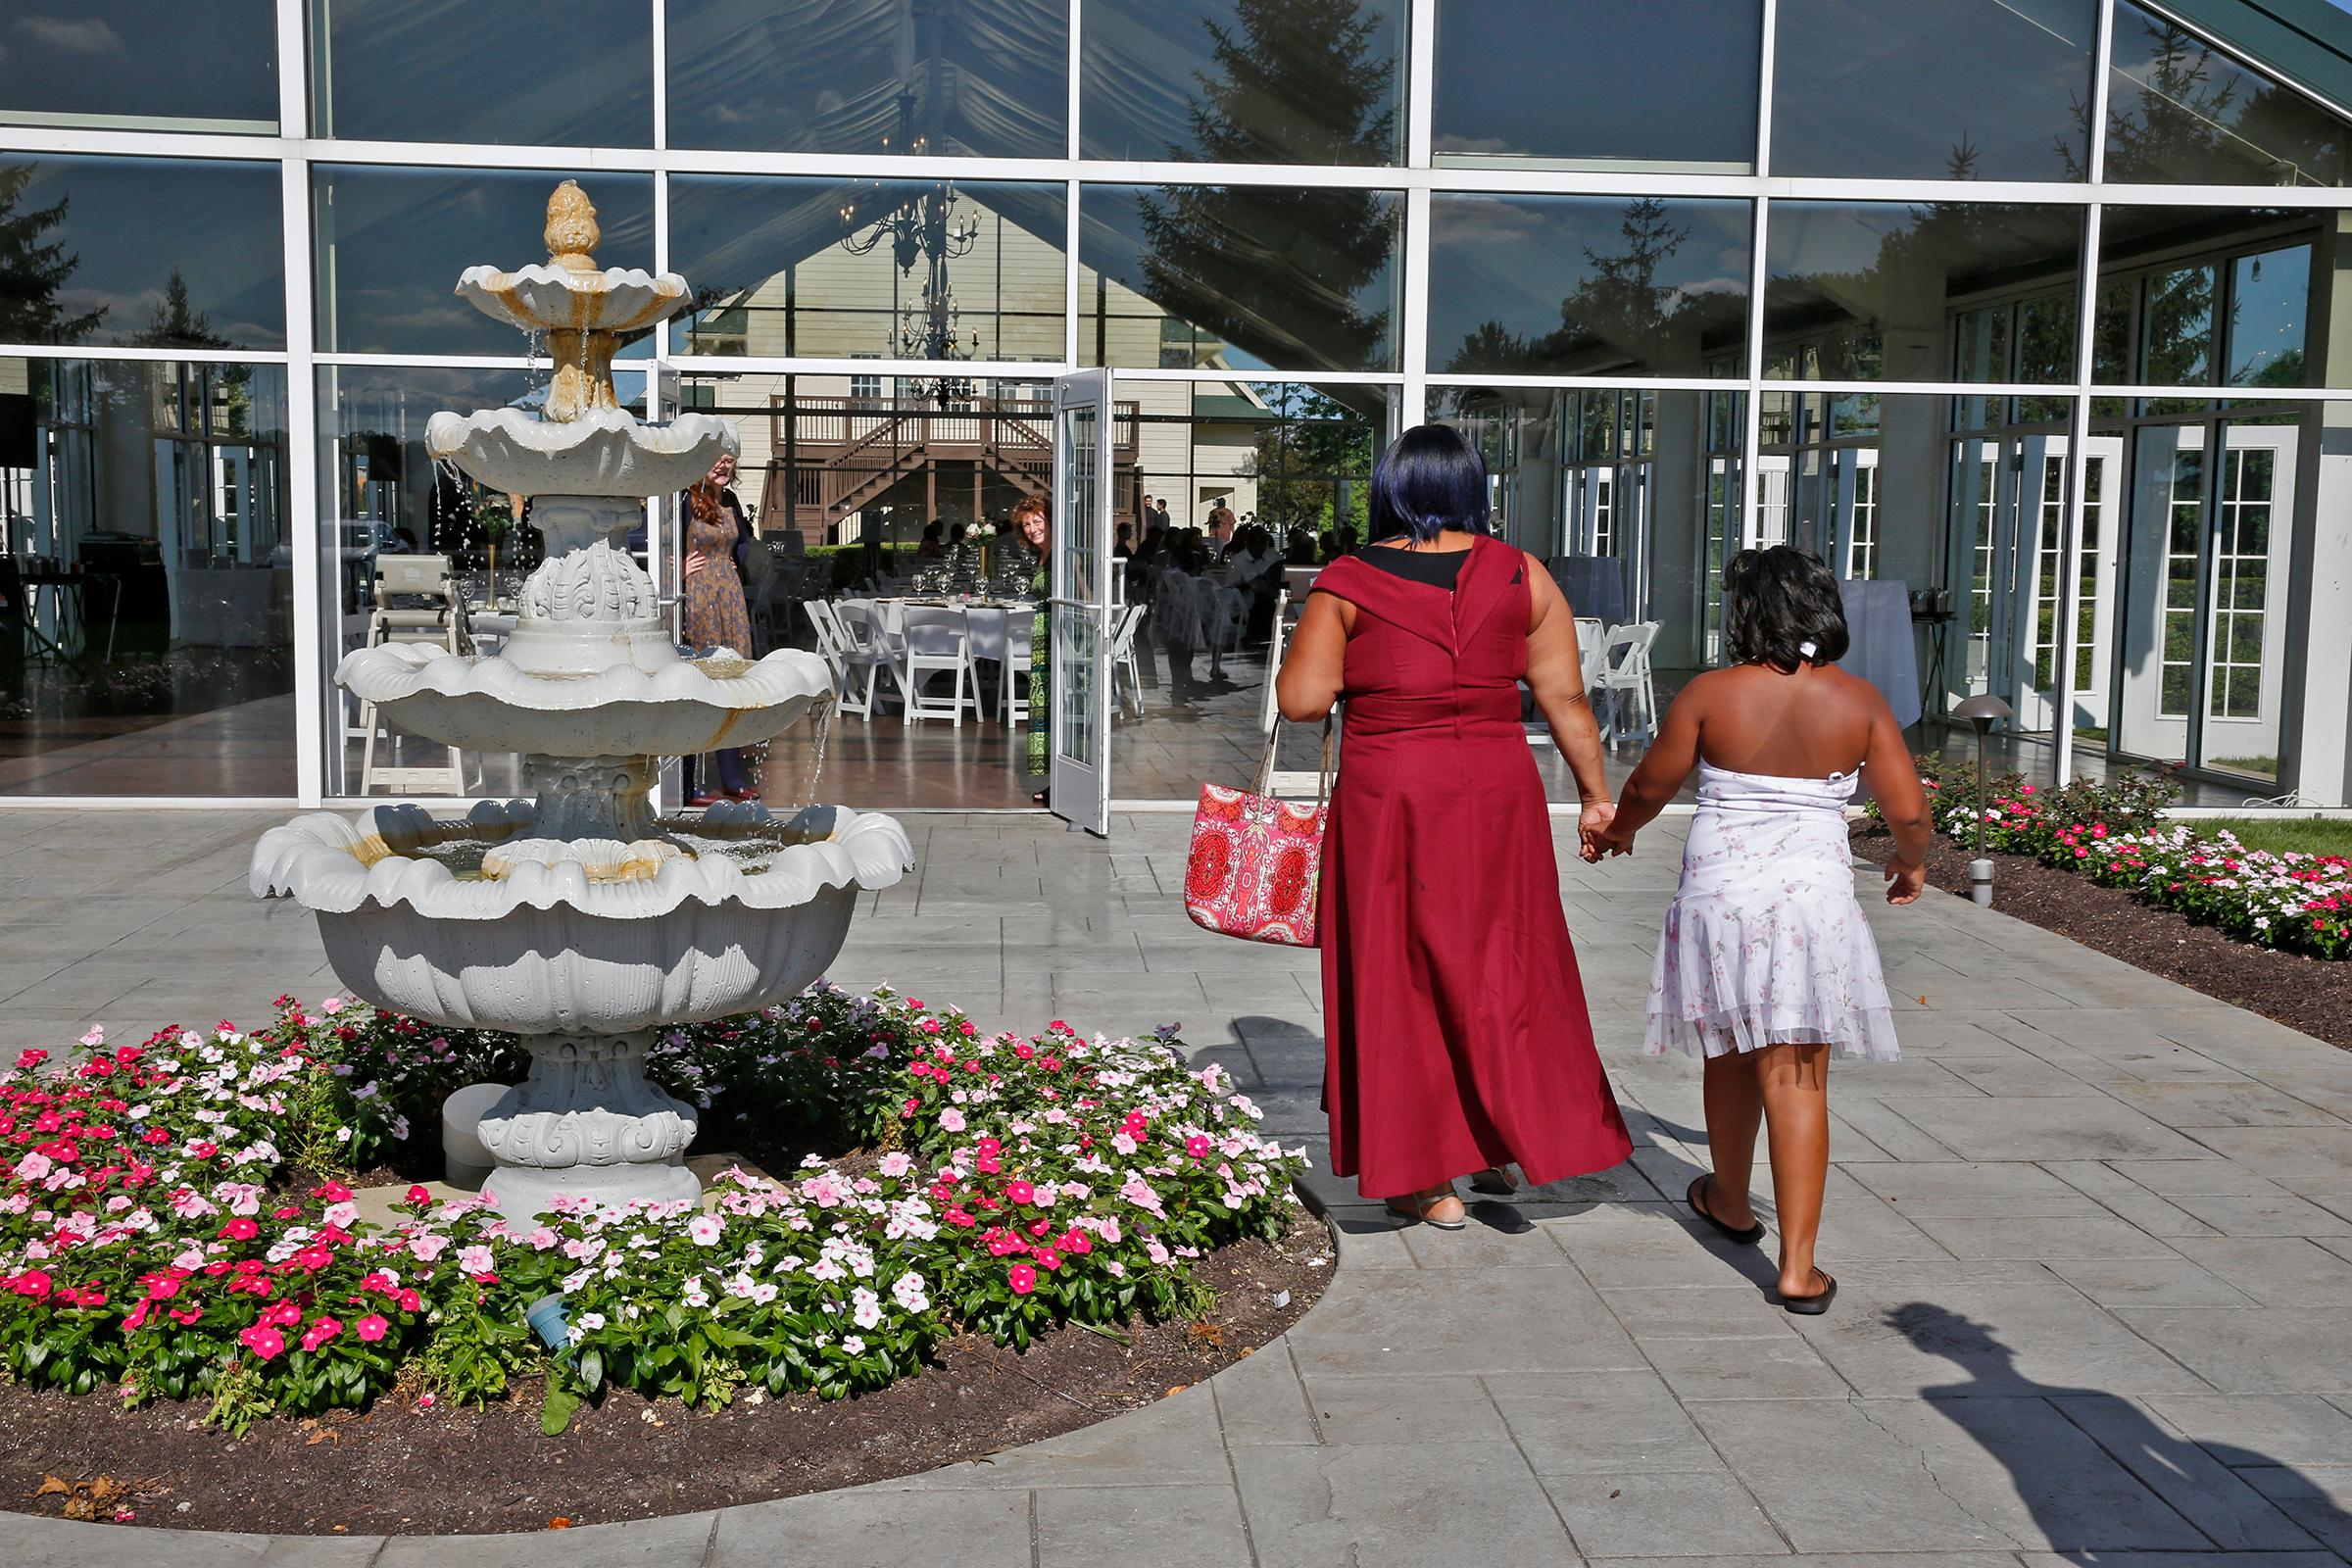 People from several homeless shelters in Indianapolis arrive at the Ritz Charles to enjoy a reception, Saturday, July 15, 2017. Sarah Cummins called off her wedding which was supposed to be this day. Cummins decided to bring purpose to the couple's pain by inviting area homeless to enjoy the reception. (Kelly Wilkinson/The Indianapolis Star via AP)